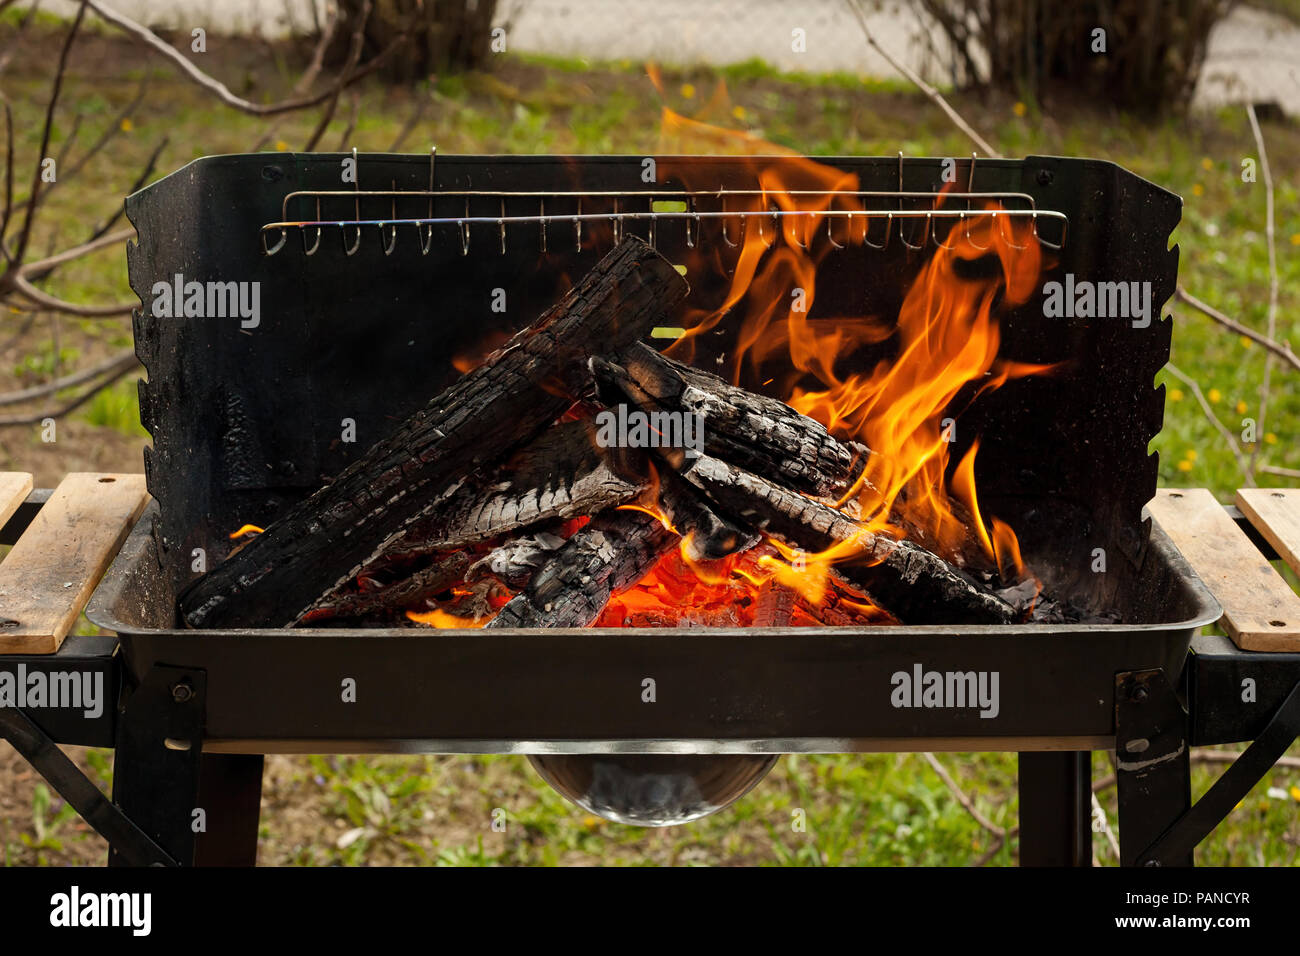 Barbecue grill with fire on nature, outdoor, close up - Stock Image